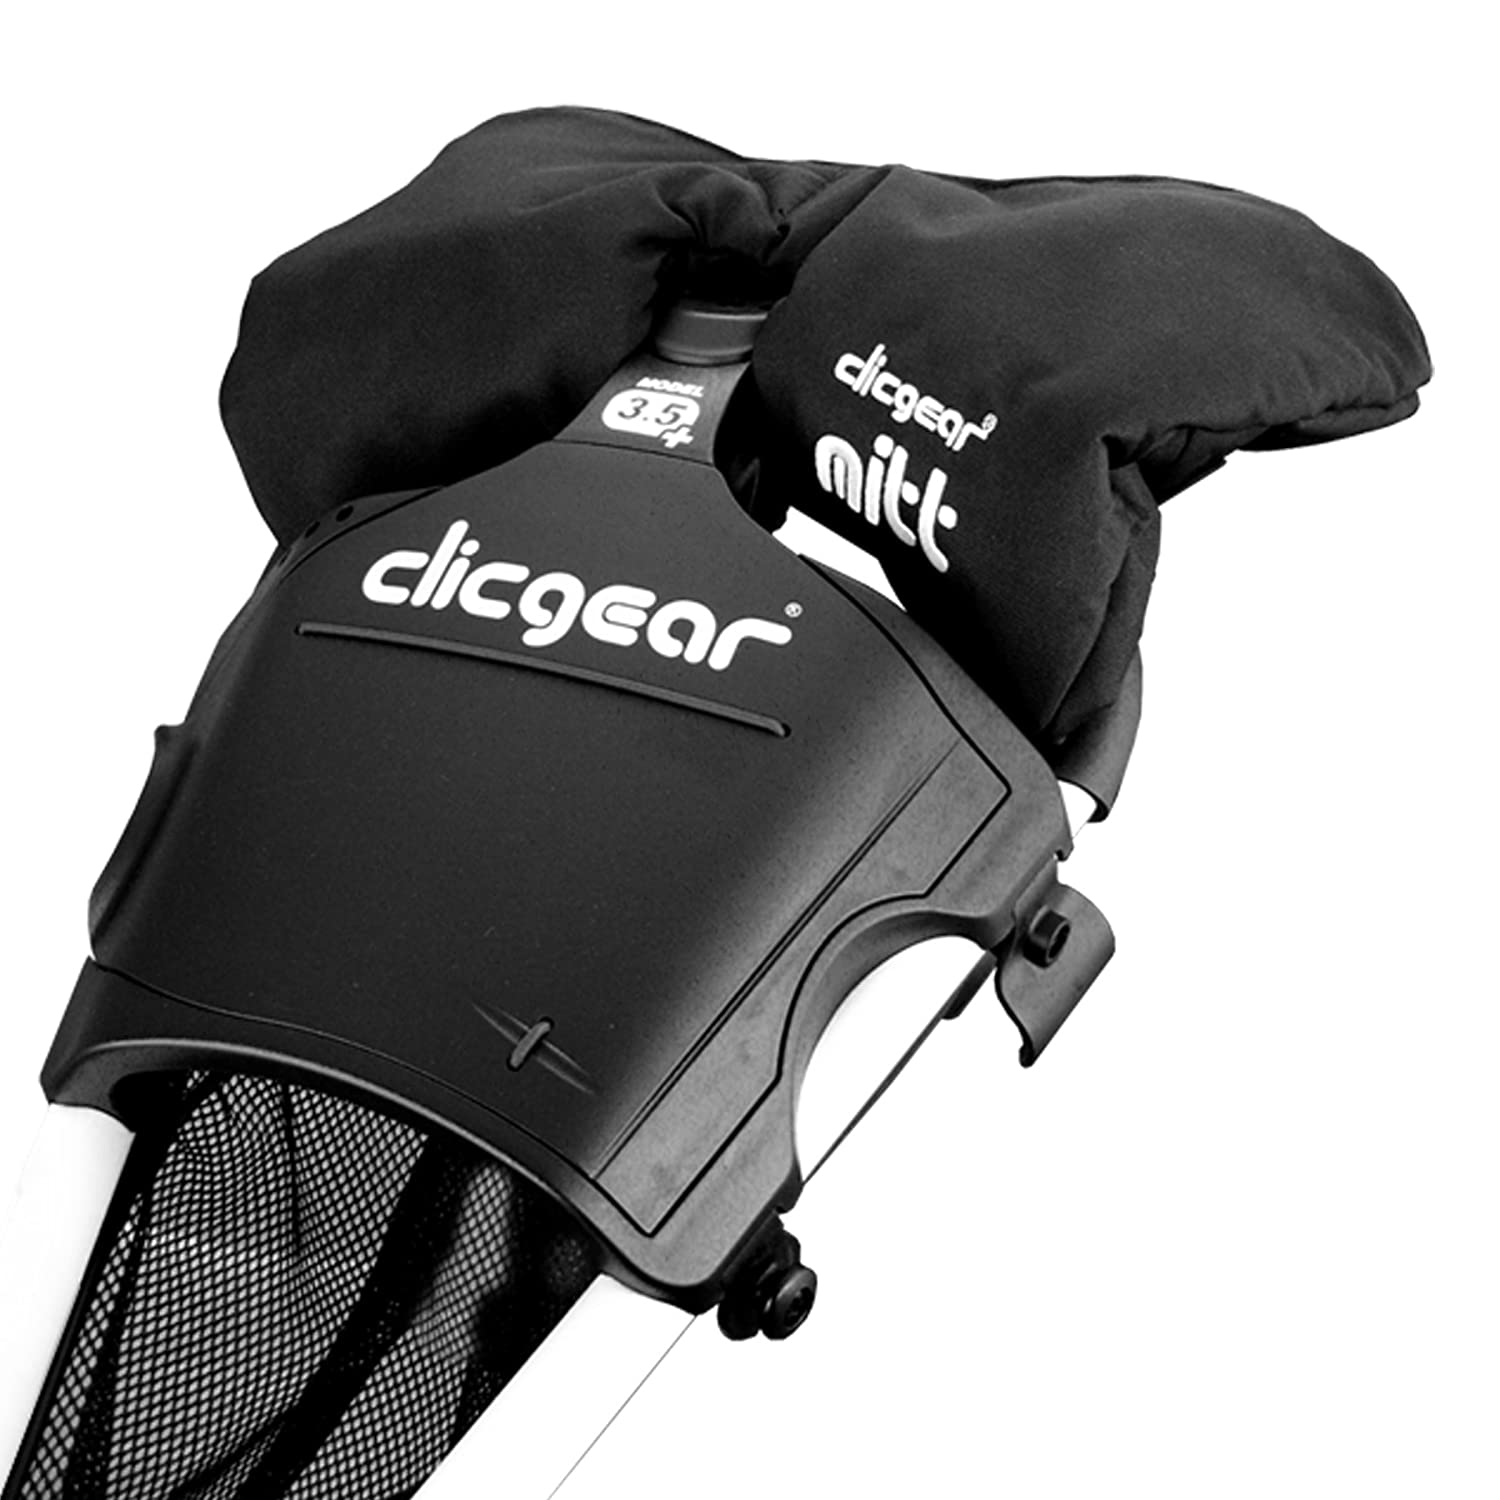 56b24114acb3 Clicgear Push Cart Mitts - Waterproof, Windproof Golf Mittens